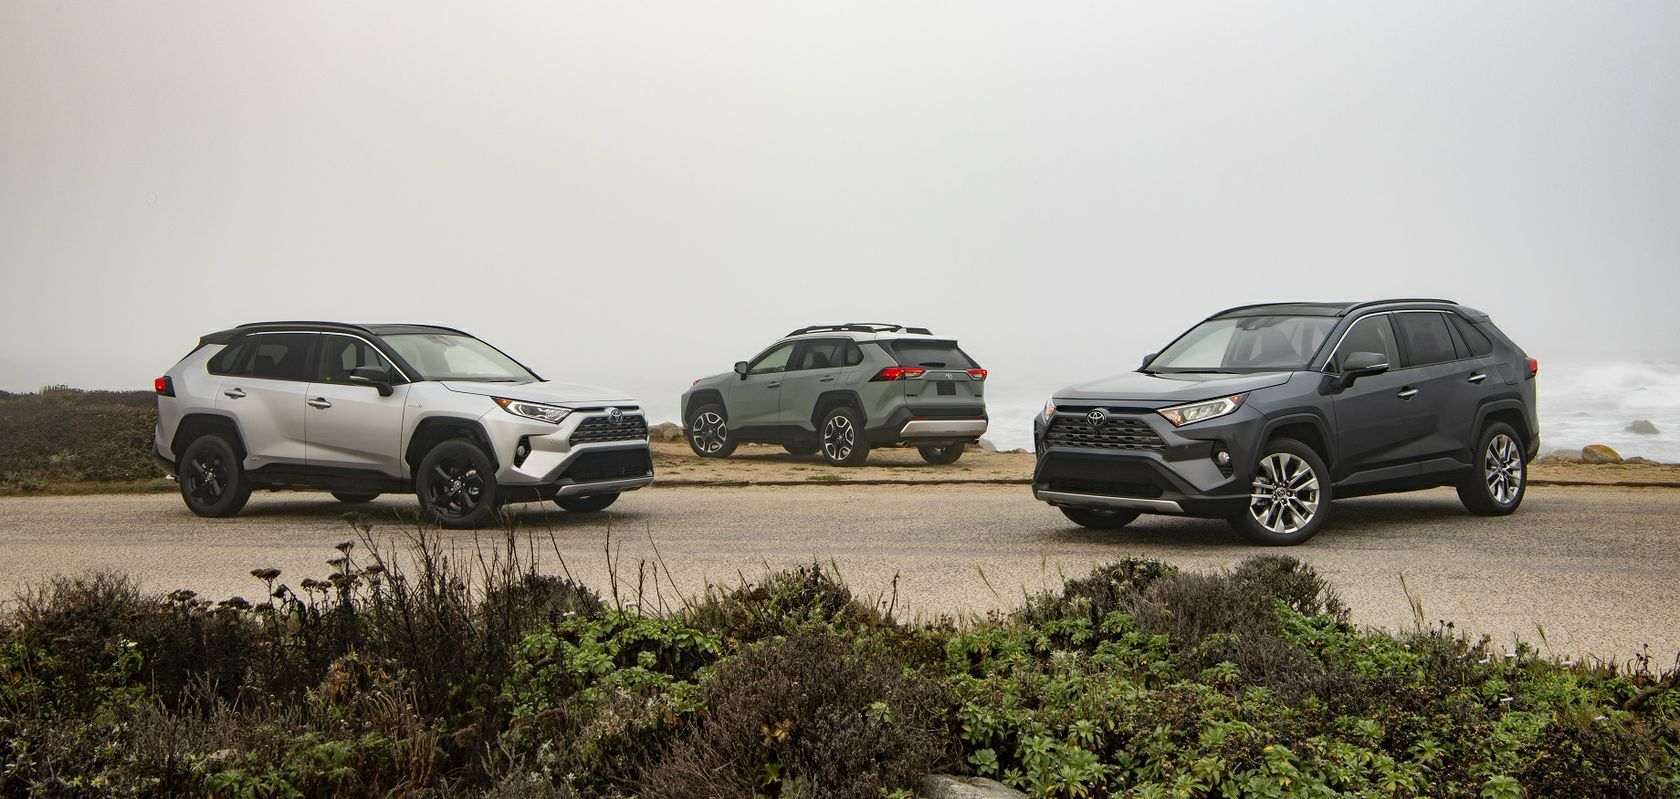 All New 2019 Toyota Rav4 Breaks The Mold For The Segment It Created